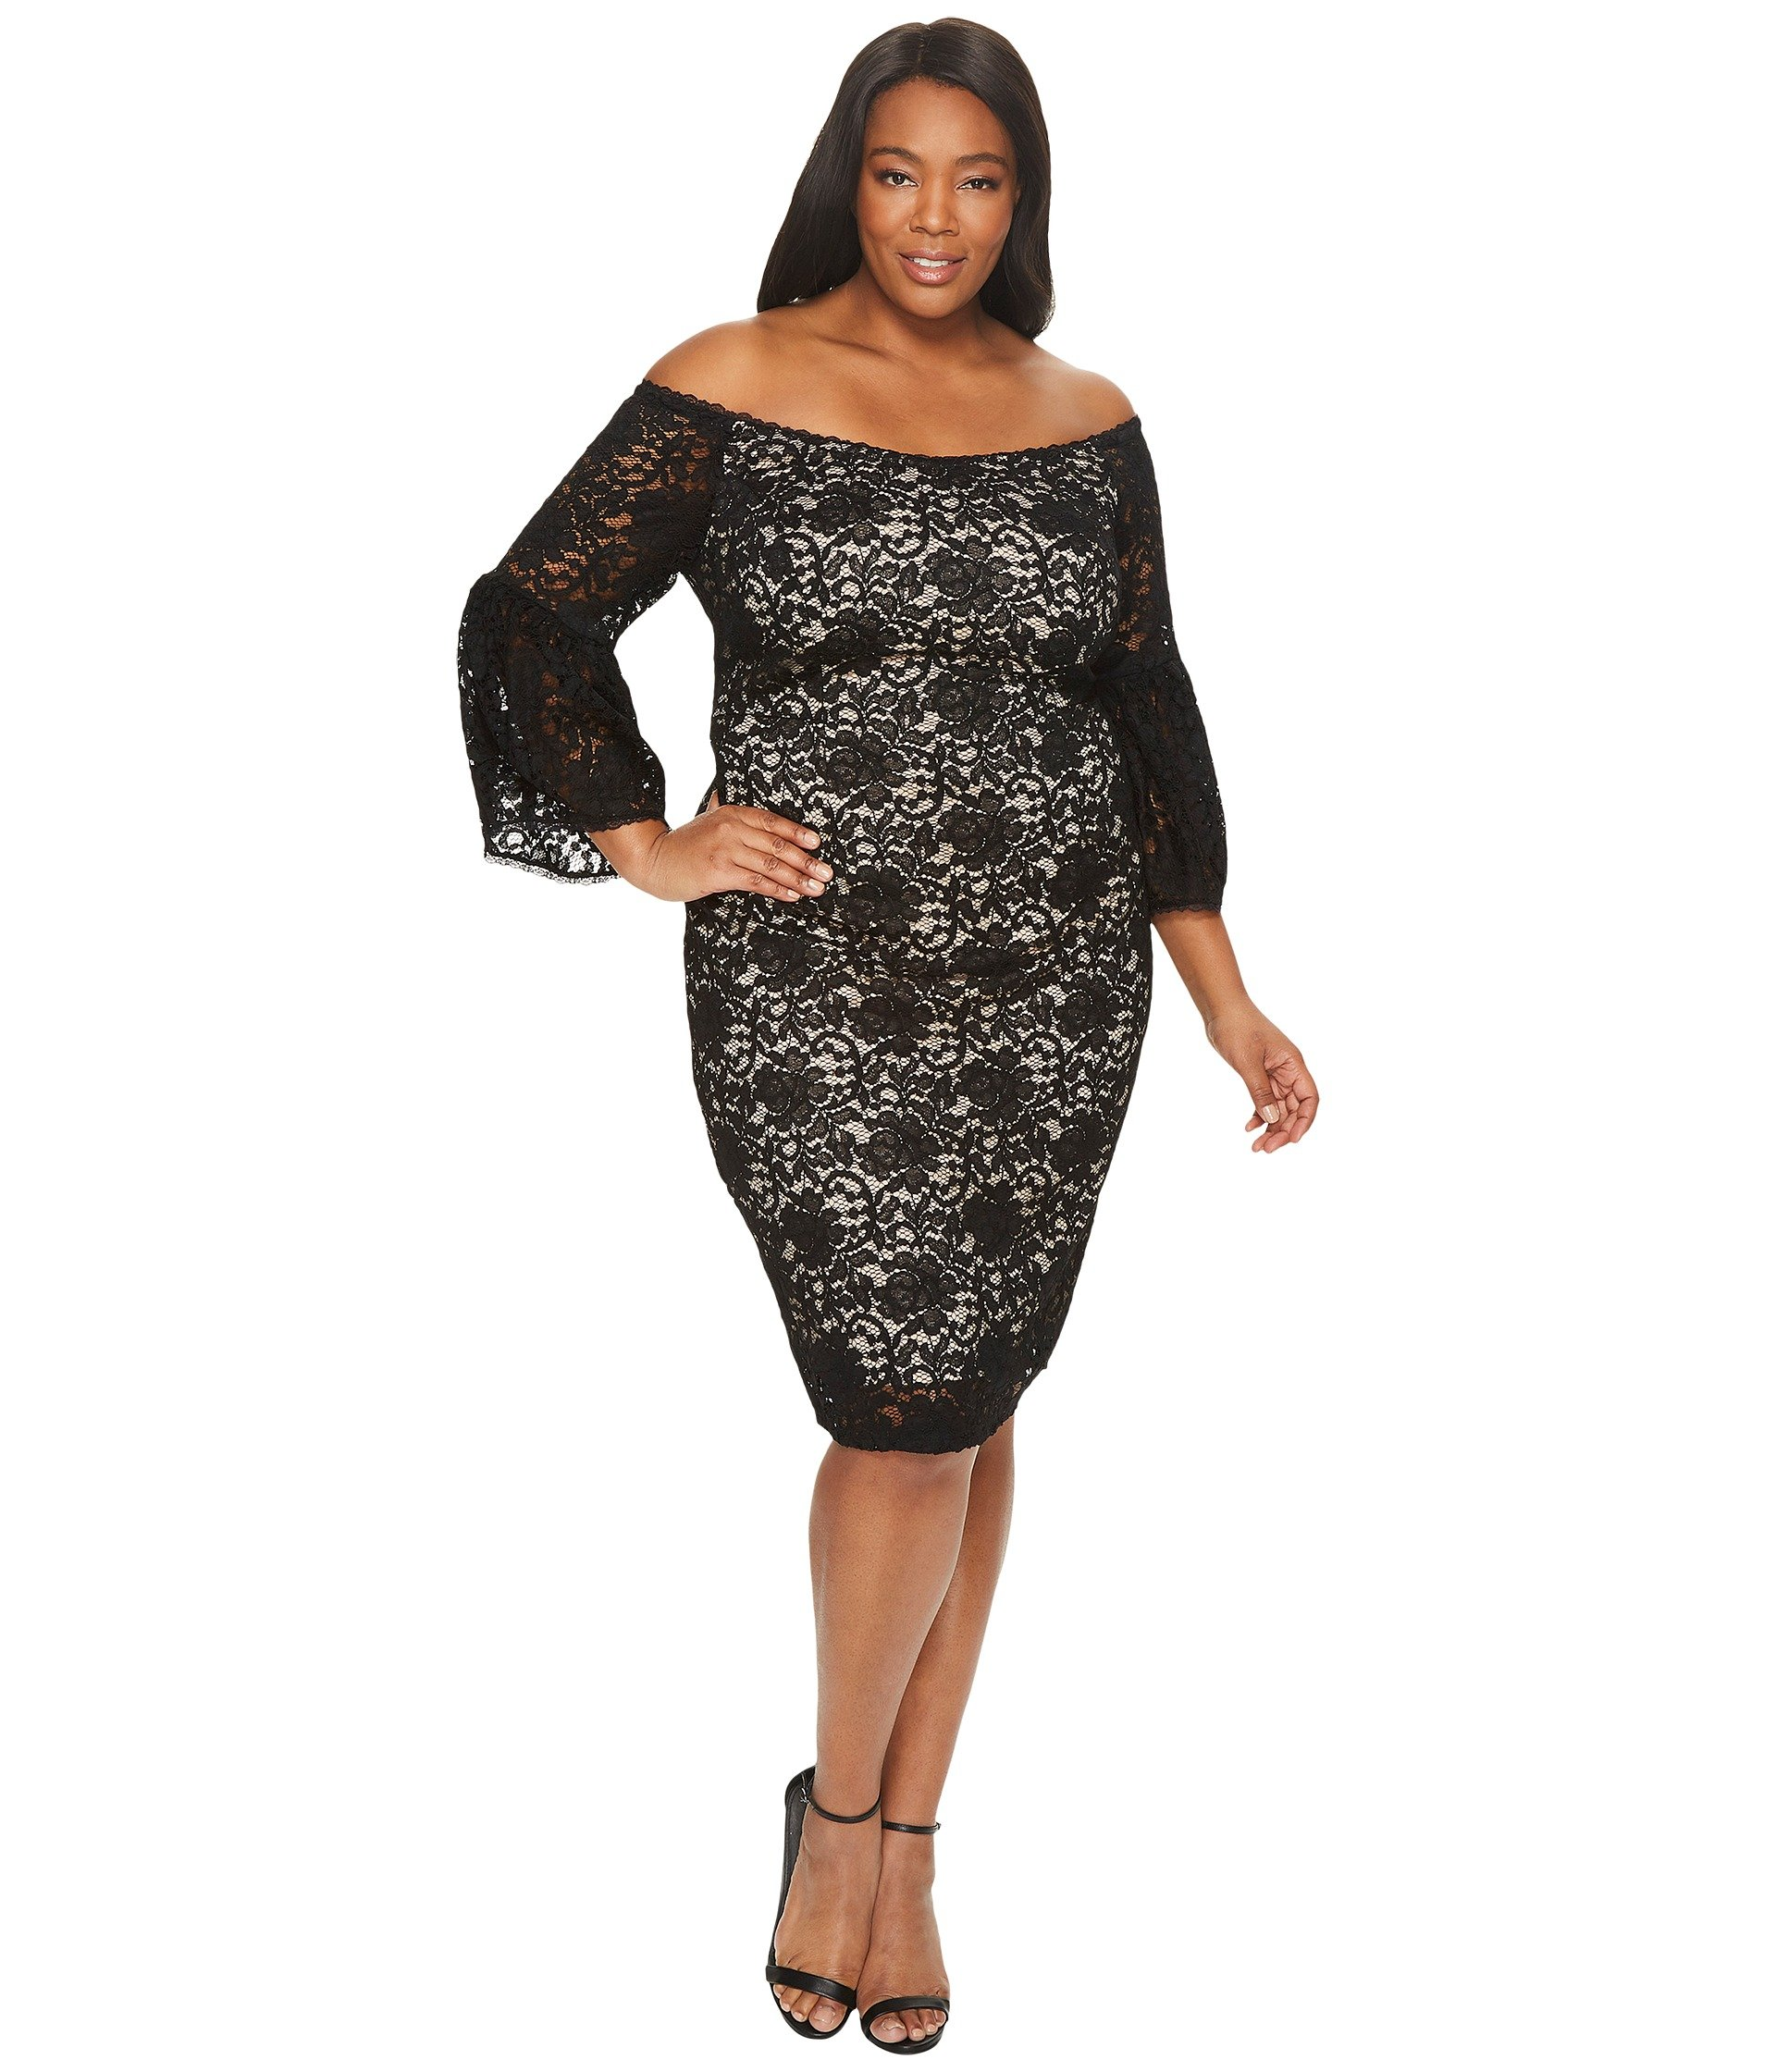 b104cf76bee Adrianna Papell Plus Size Juliet Lace Off The Shoulder Sheath Dress In  Black Bisque